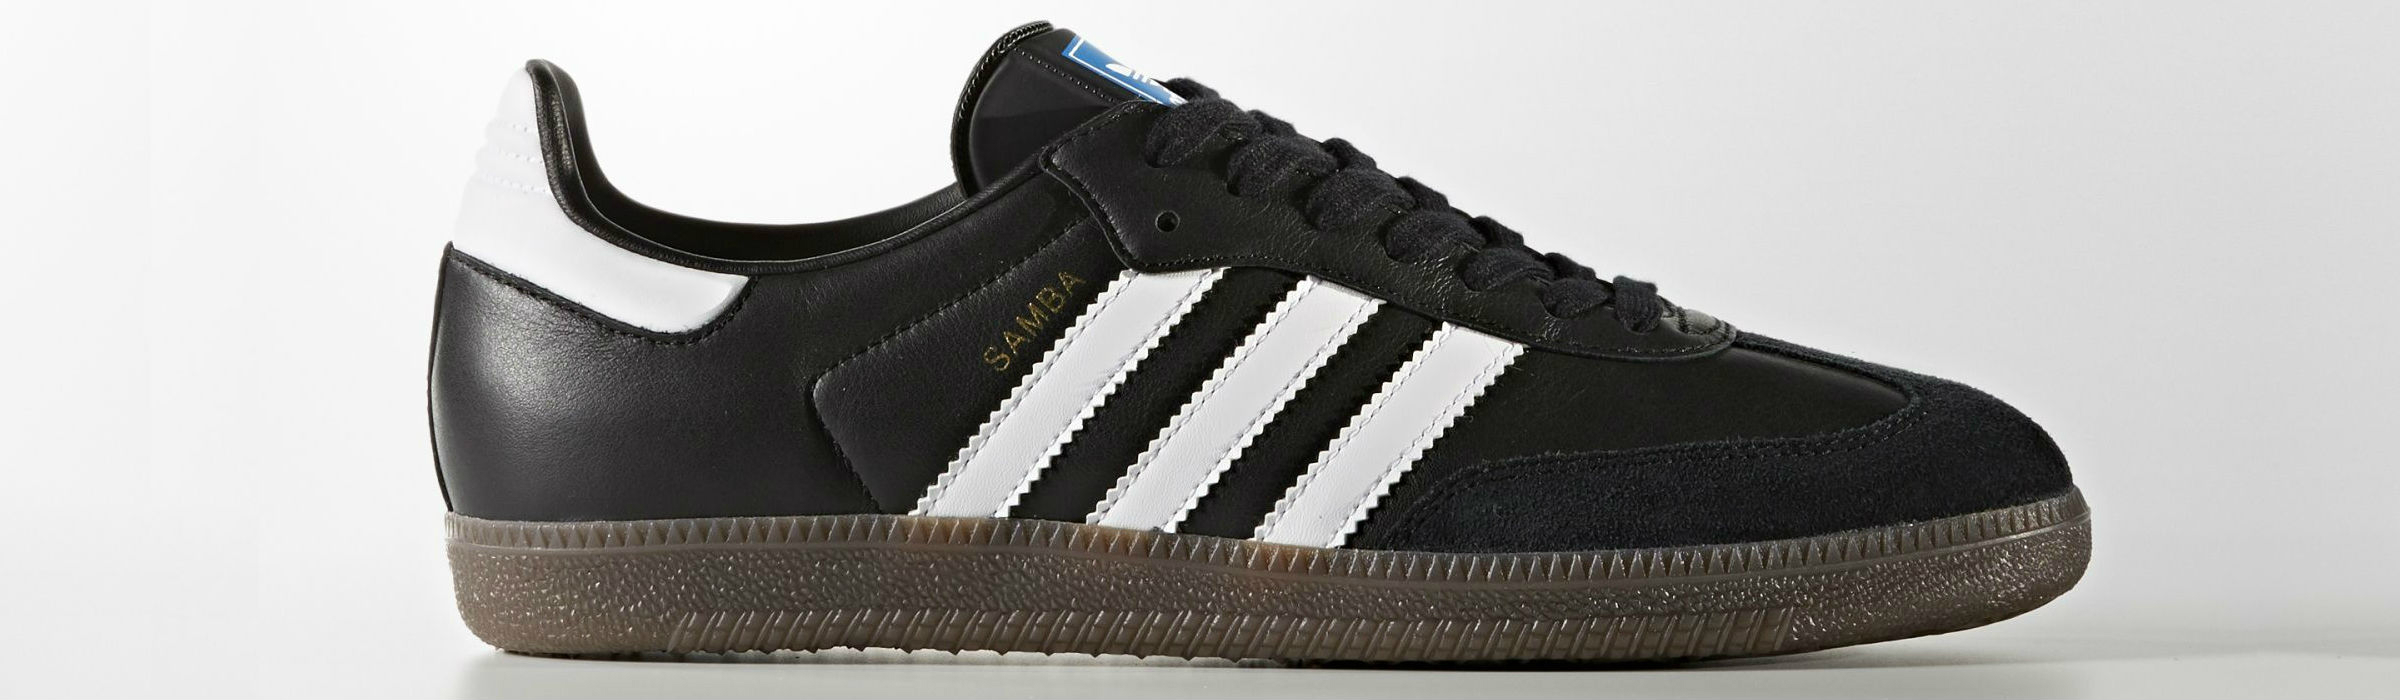 Adidas Samba Og Shoes Core Black Footwear White Gum Full